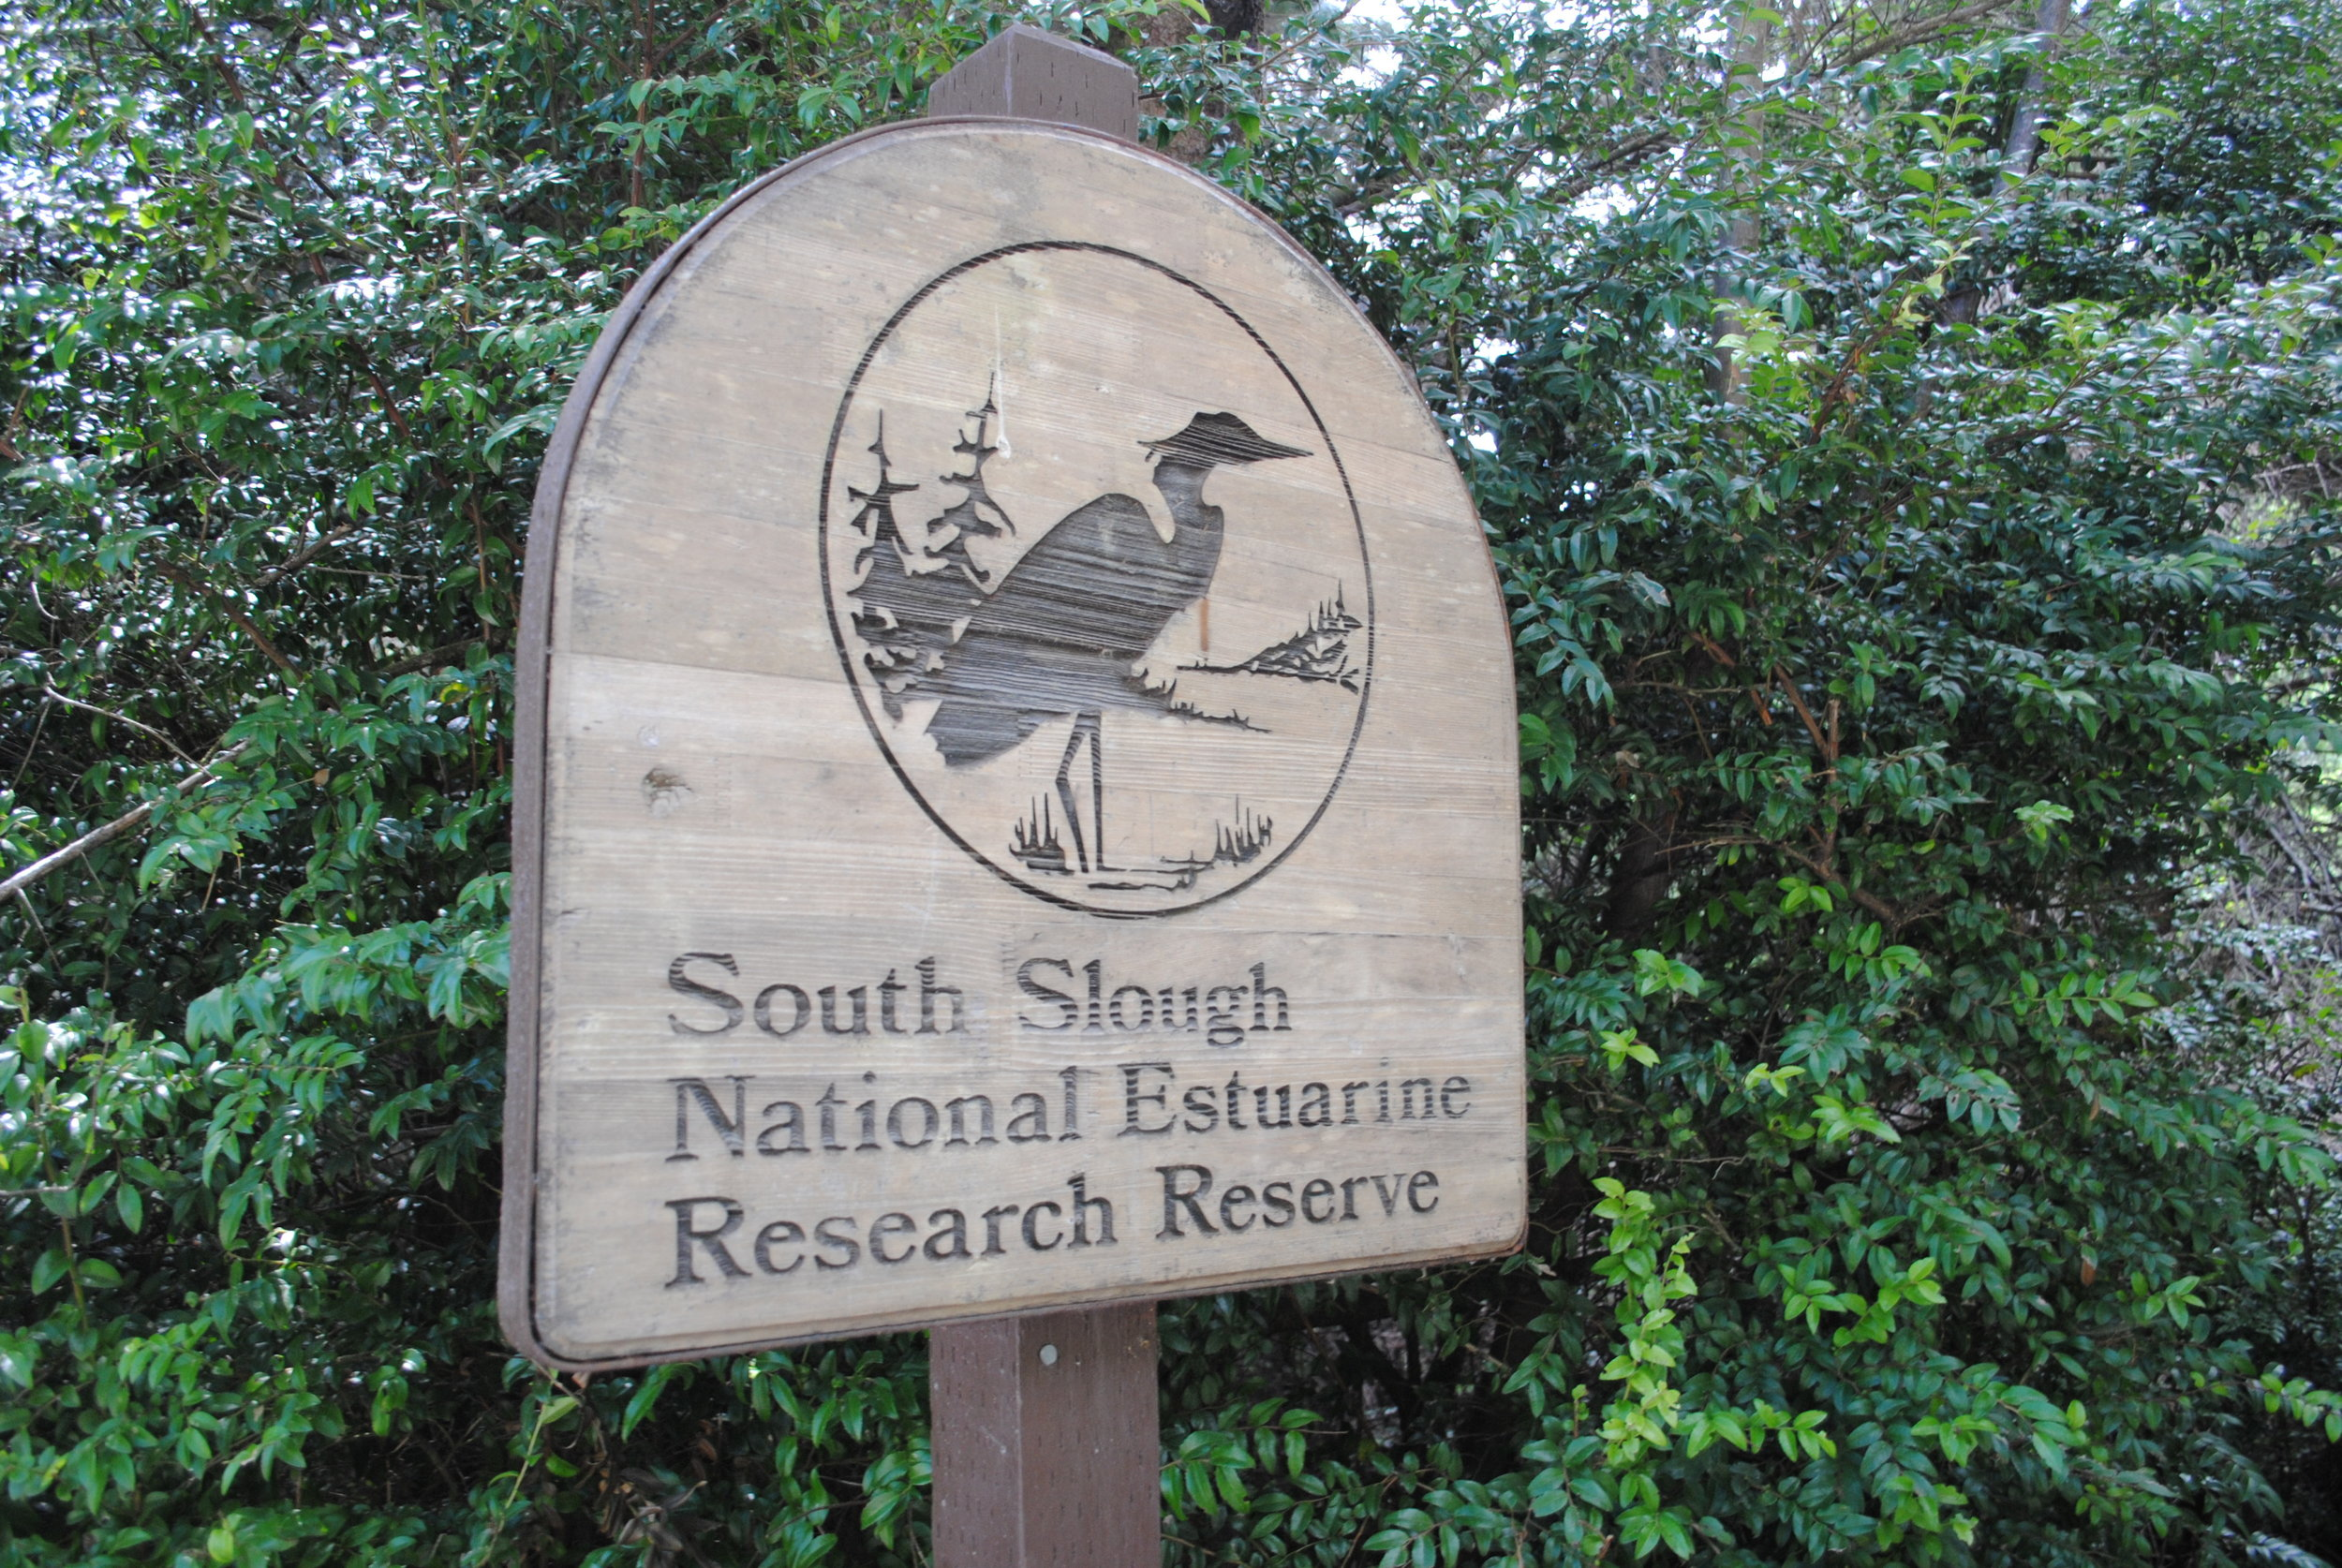 SOUTH SLOUGH ESTUARY - Charleston, Oregon- What to do in Southern Oregon - Things to do in Bandon